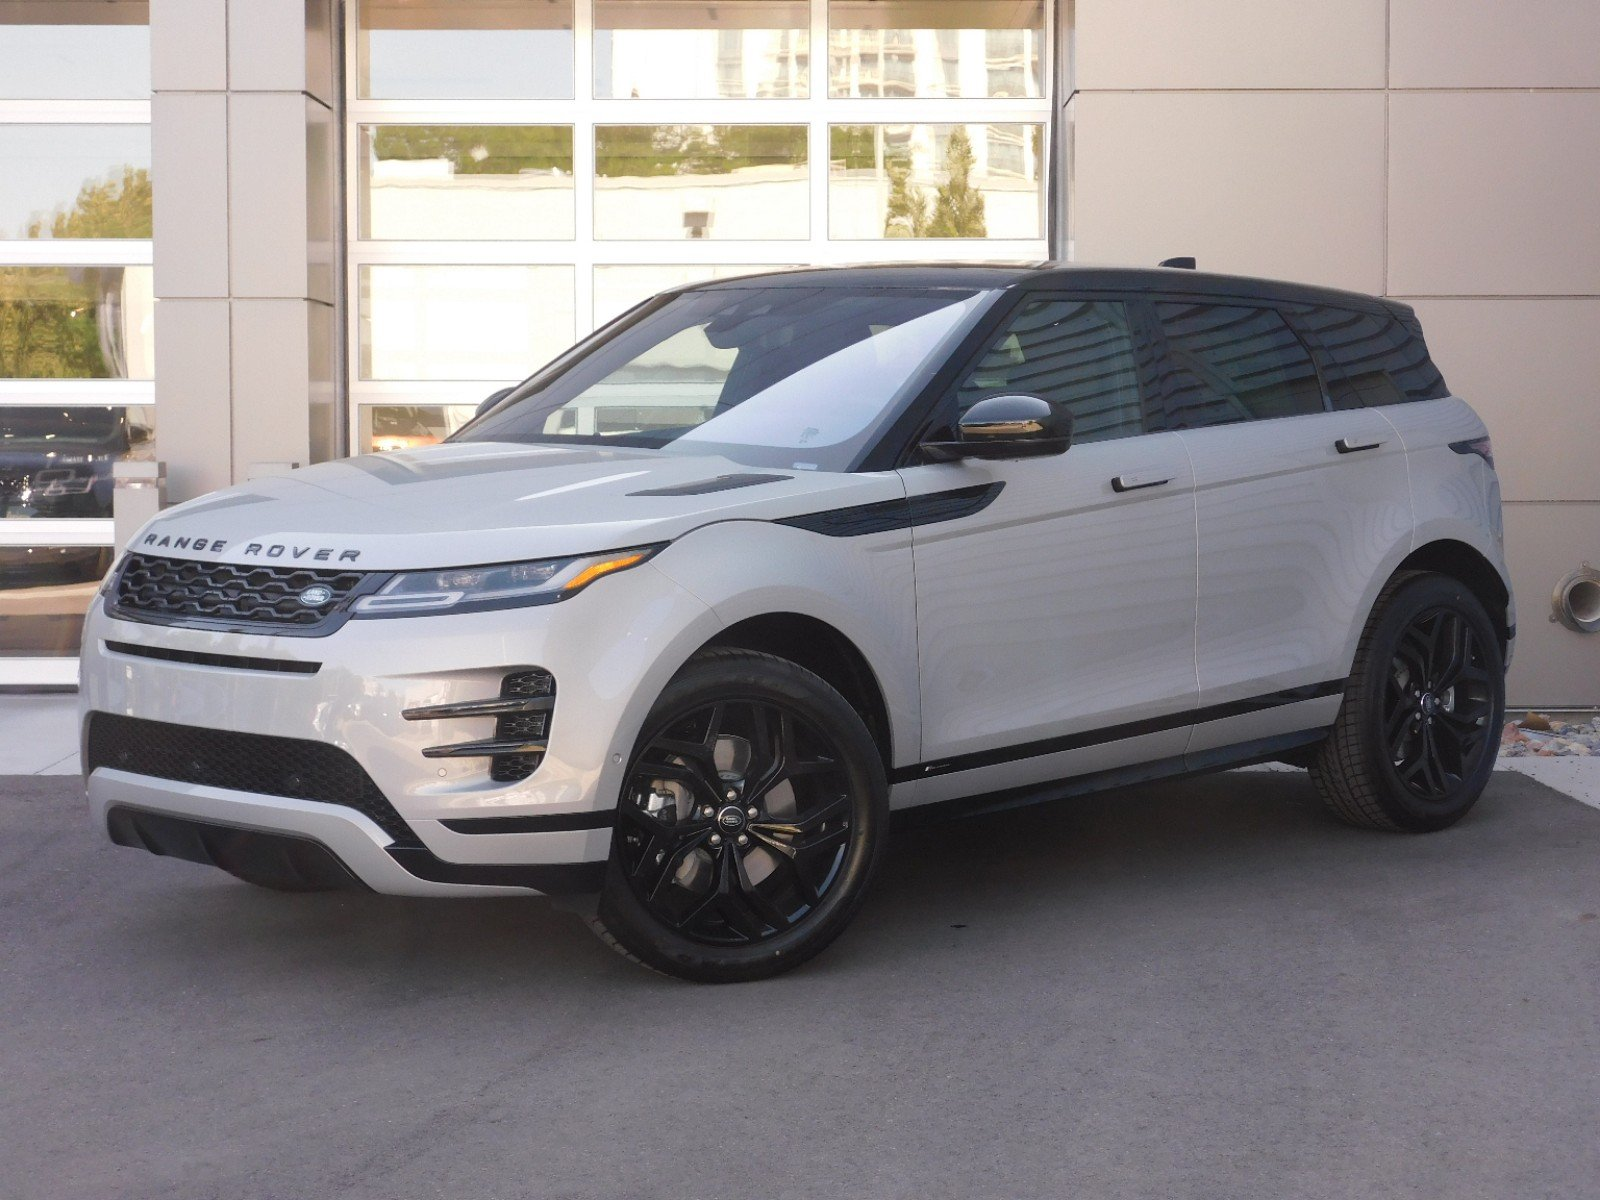 New 2020 Land Rover Range Rover Evoque R-Dynamic SE AWD